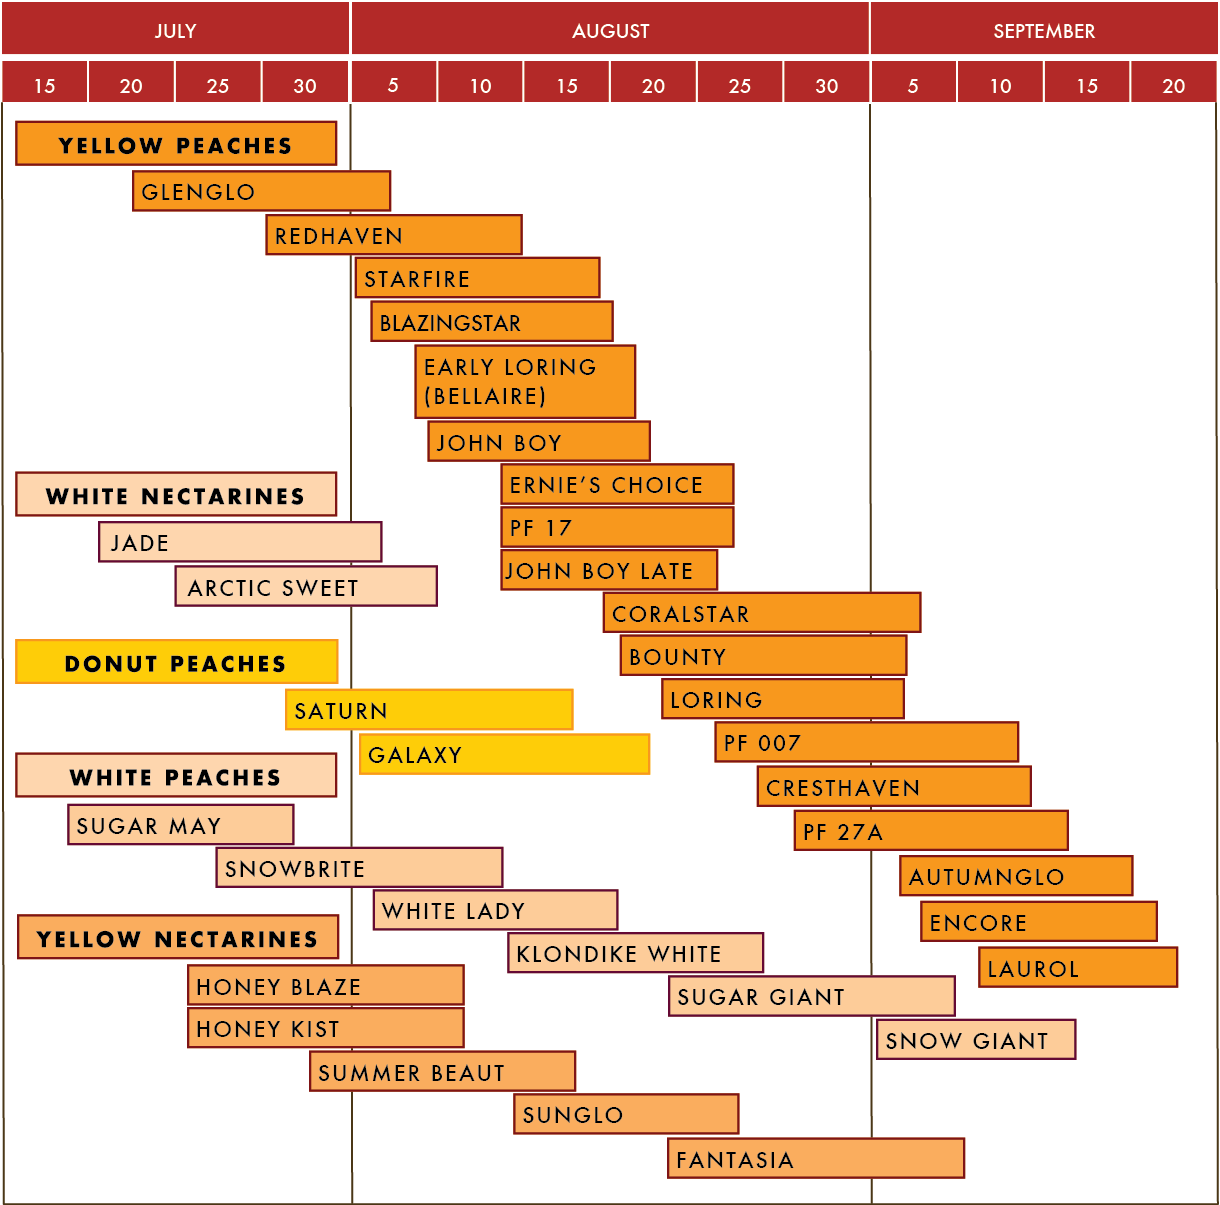 bear mountain orchards peach harvest availability chart.png